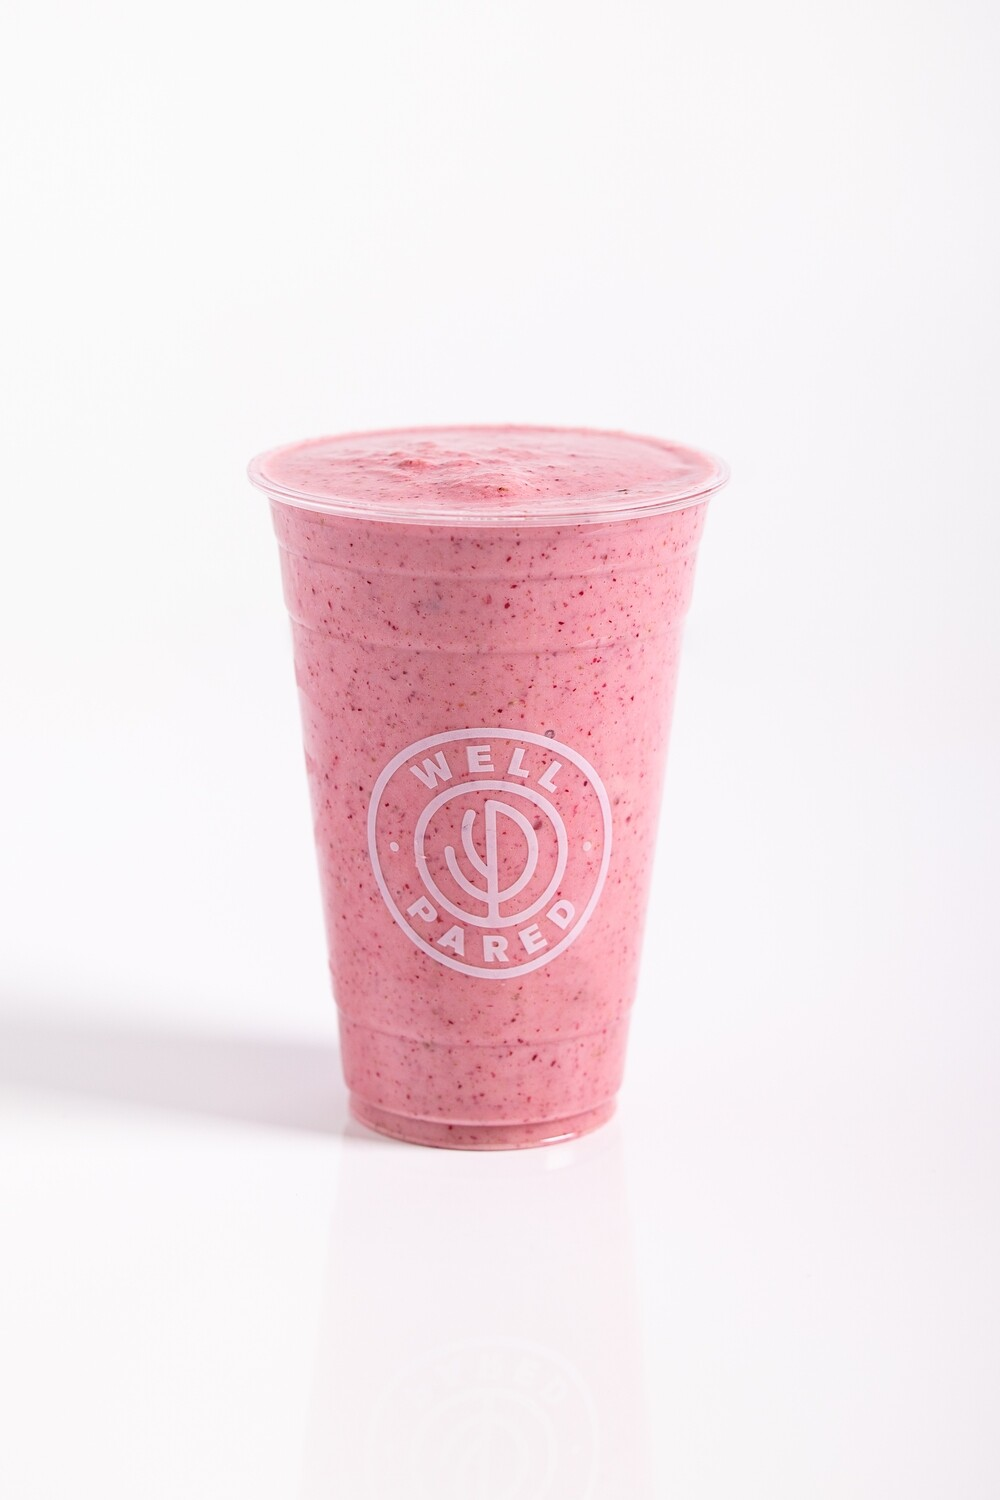 Heartful Smoothie (FEBRUARY SPECIAL! - 20oz Only)